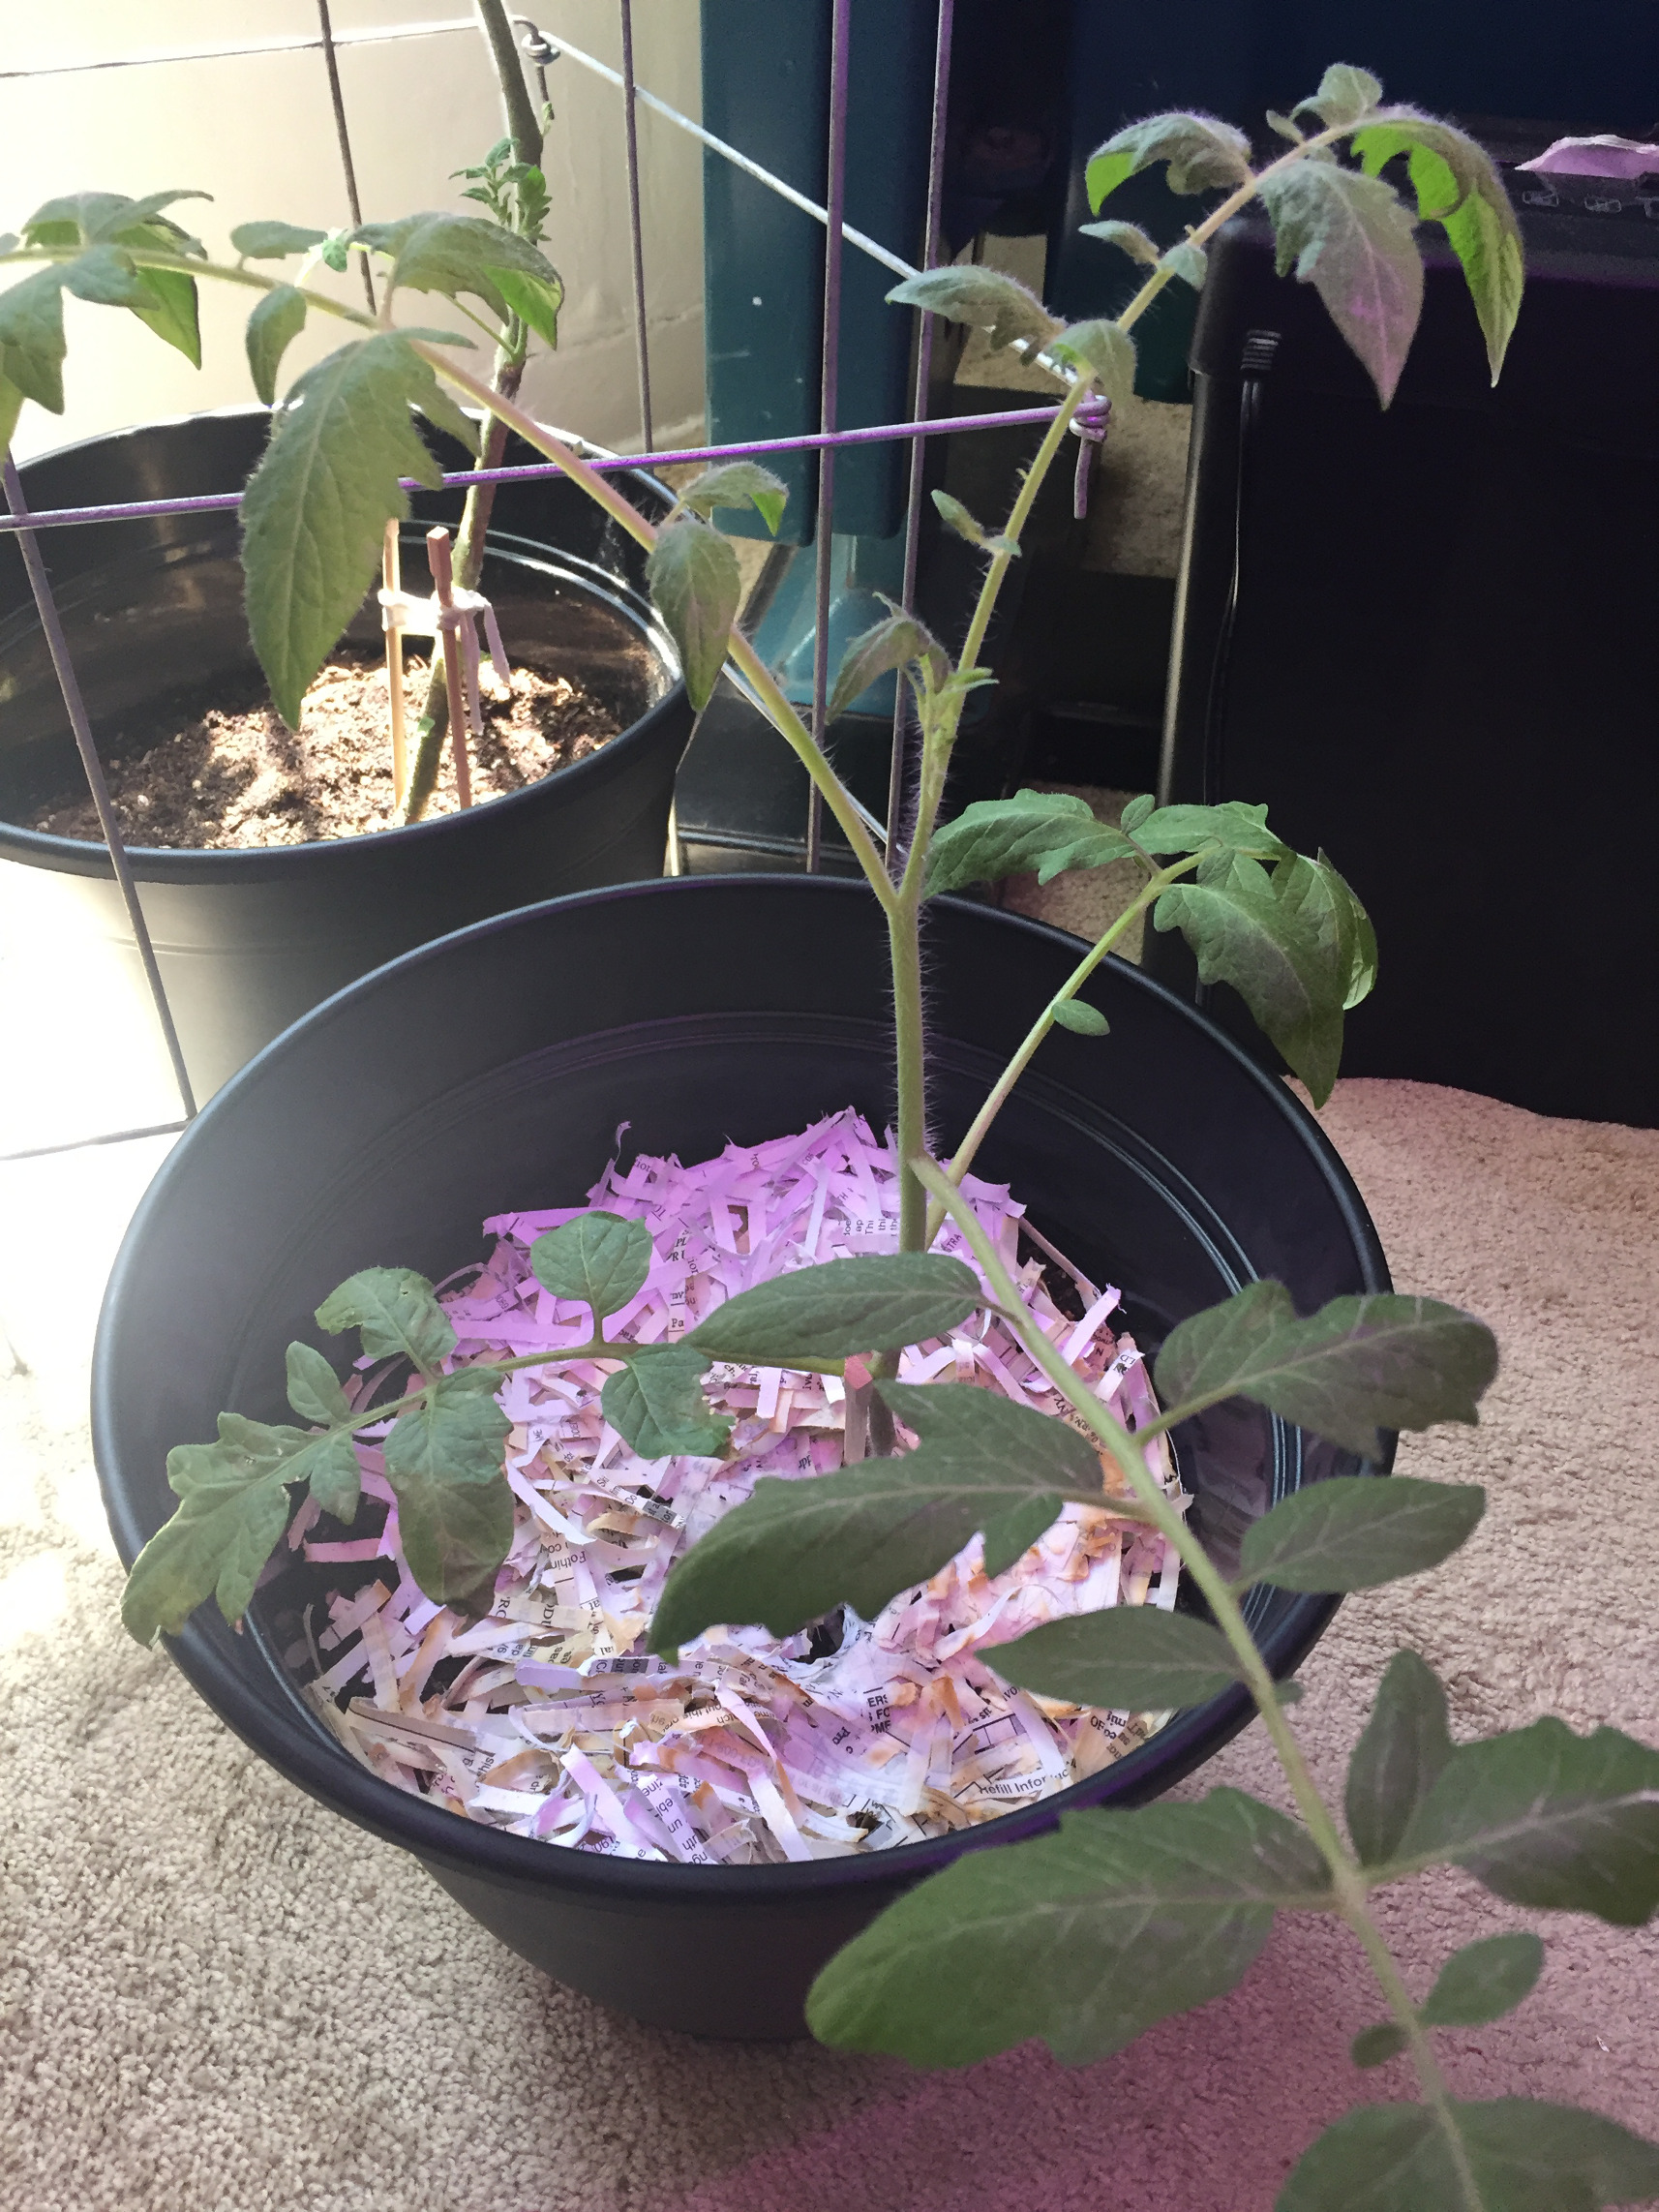 Transplanted Cherry Tomato Plants Indoor Container Garden Those Someday Goals